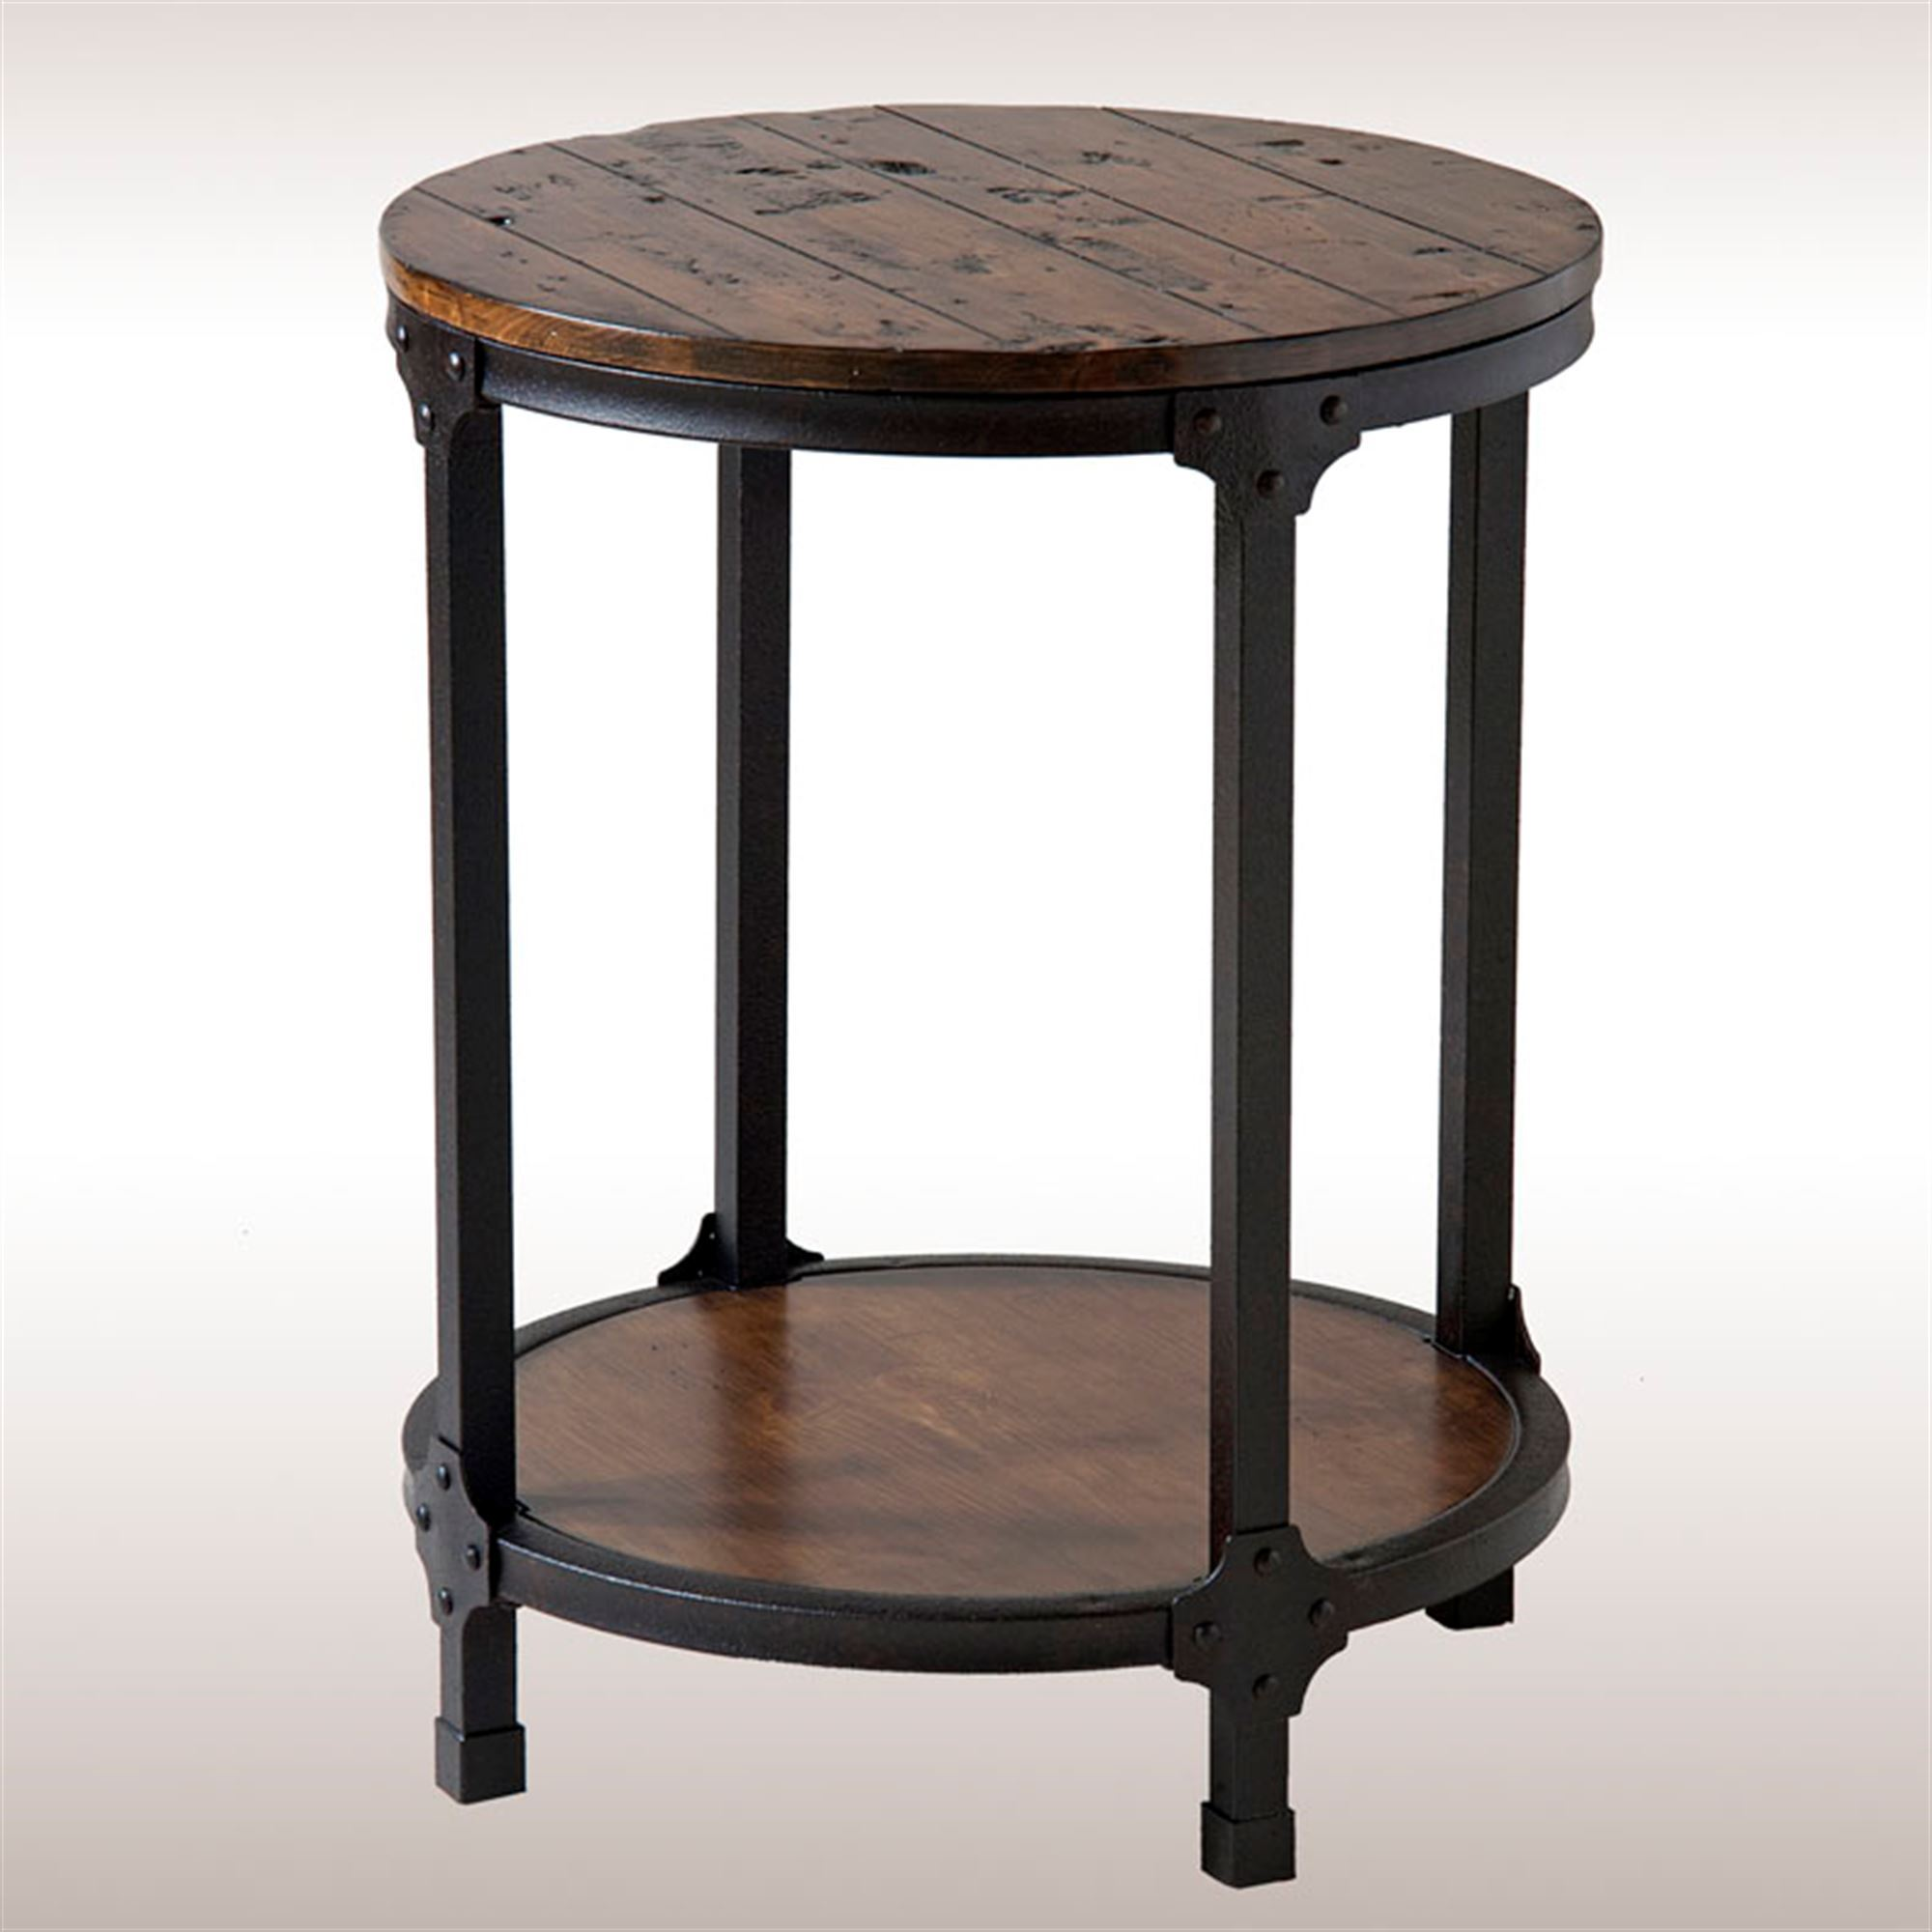 solid wood rustic accent tables for regarding plans macon round table intended plan oak pub bar height small farmhouse and chairs bathroom chest drawers jcpenney quilts mosaic